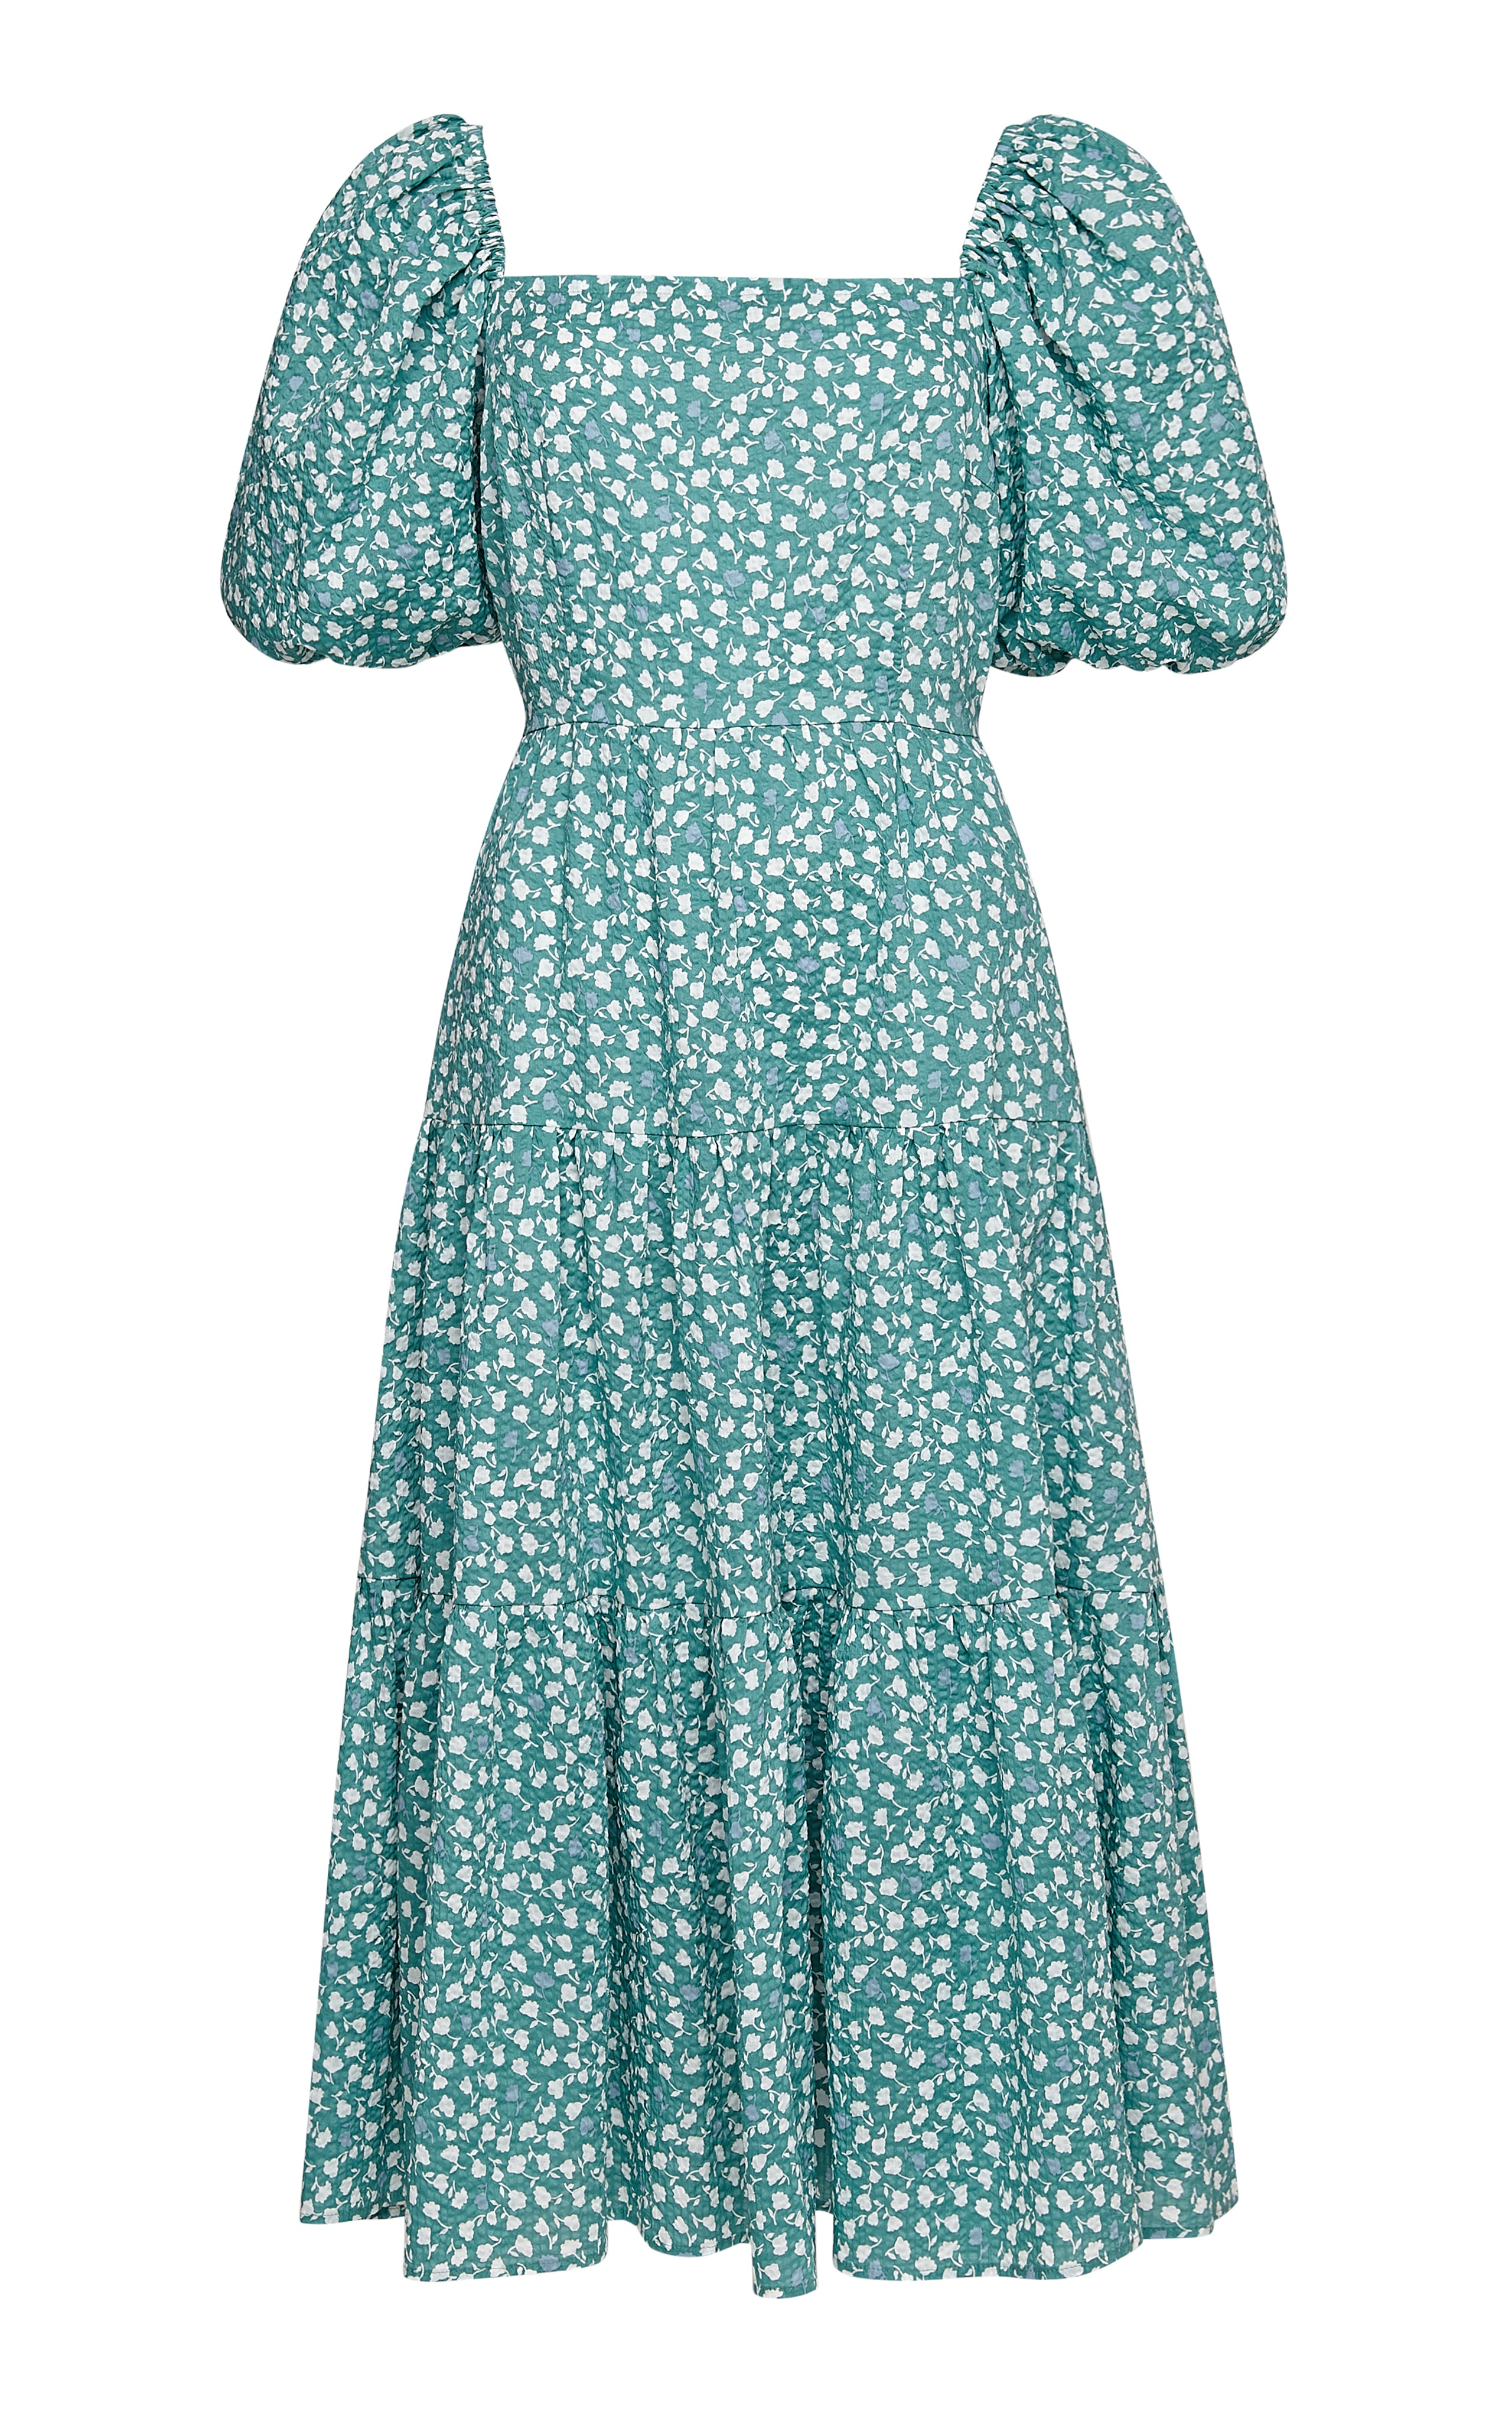 Juulika Cotton Dress with Puff Sleeves